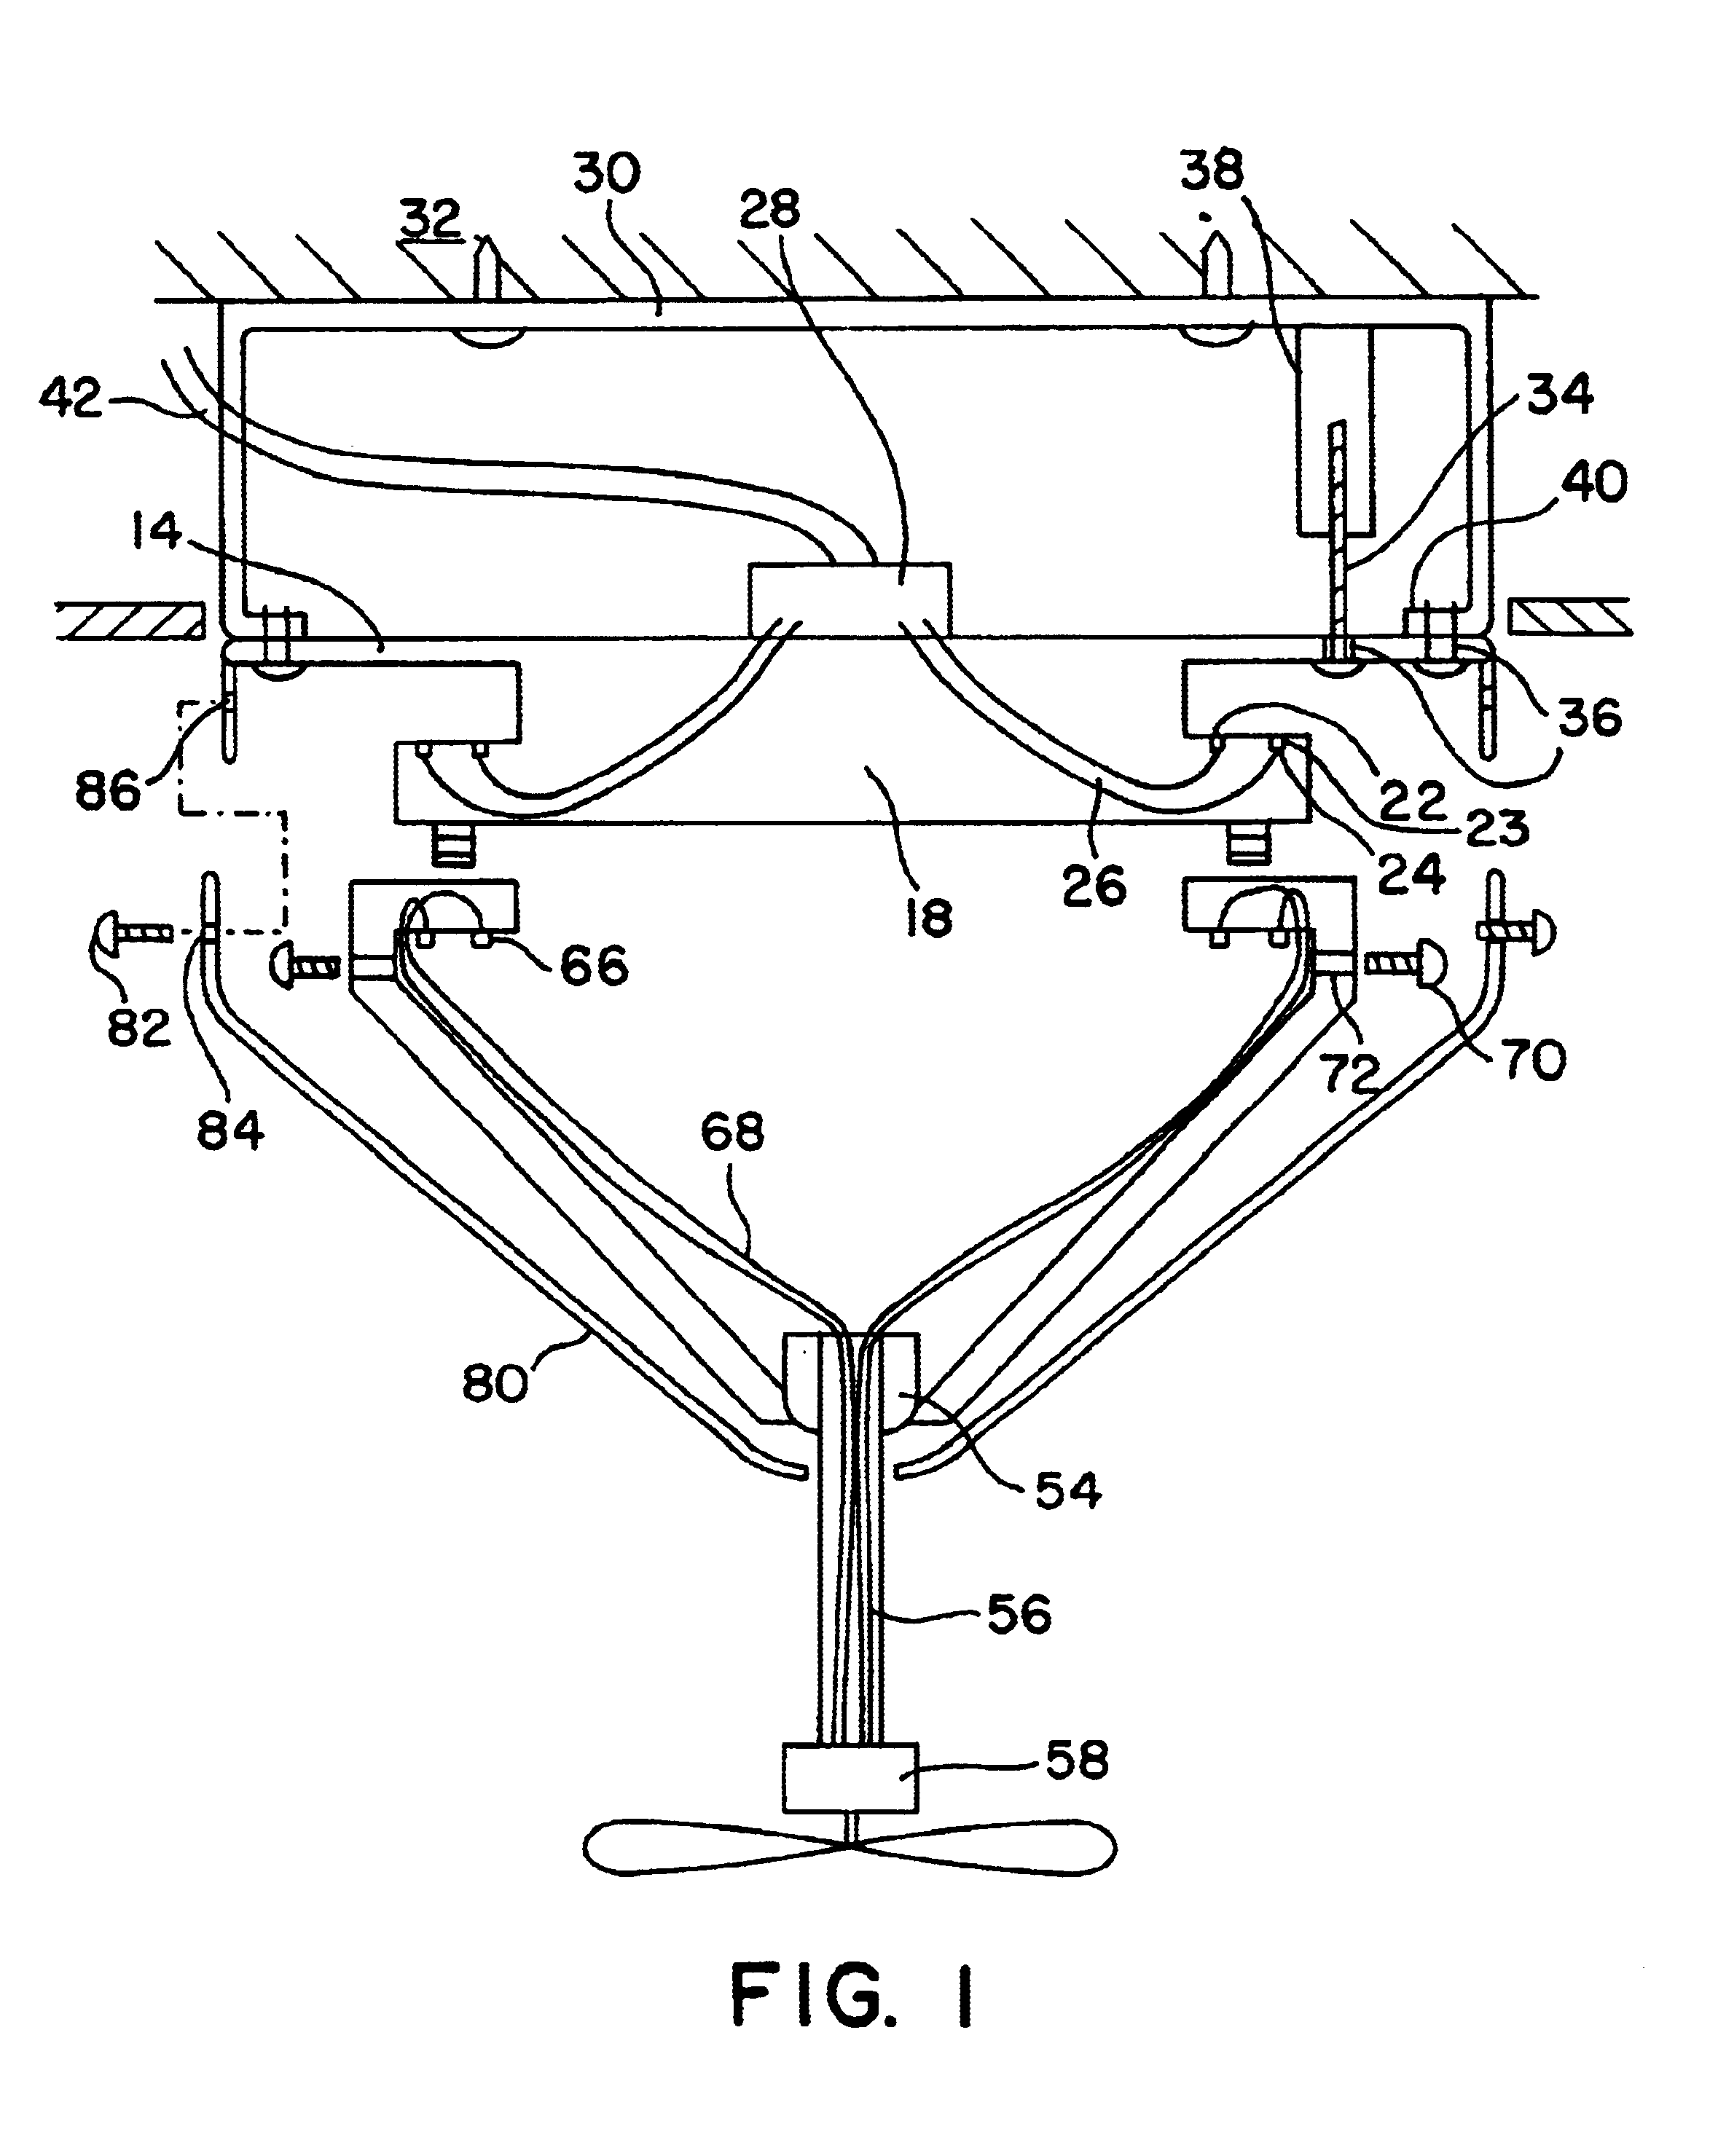 US06634901 20031021 D00001 patent us6634901 quick connect device for electrical fixture ceiling fan wiring harness at mifinder.co